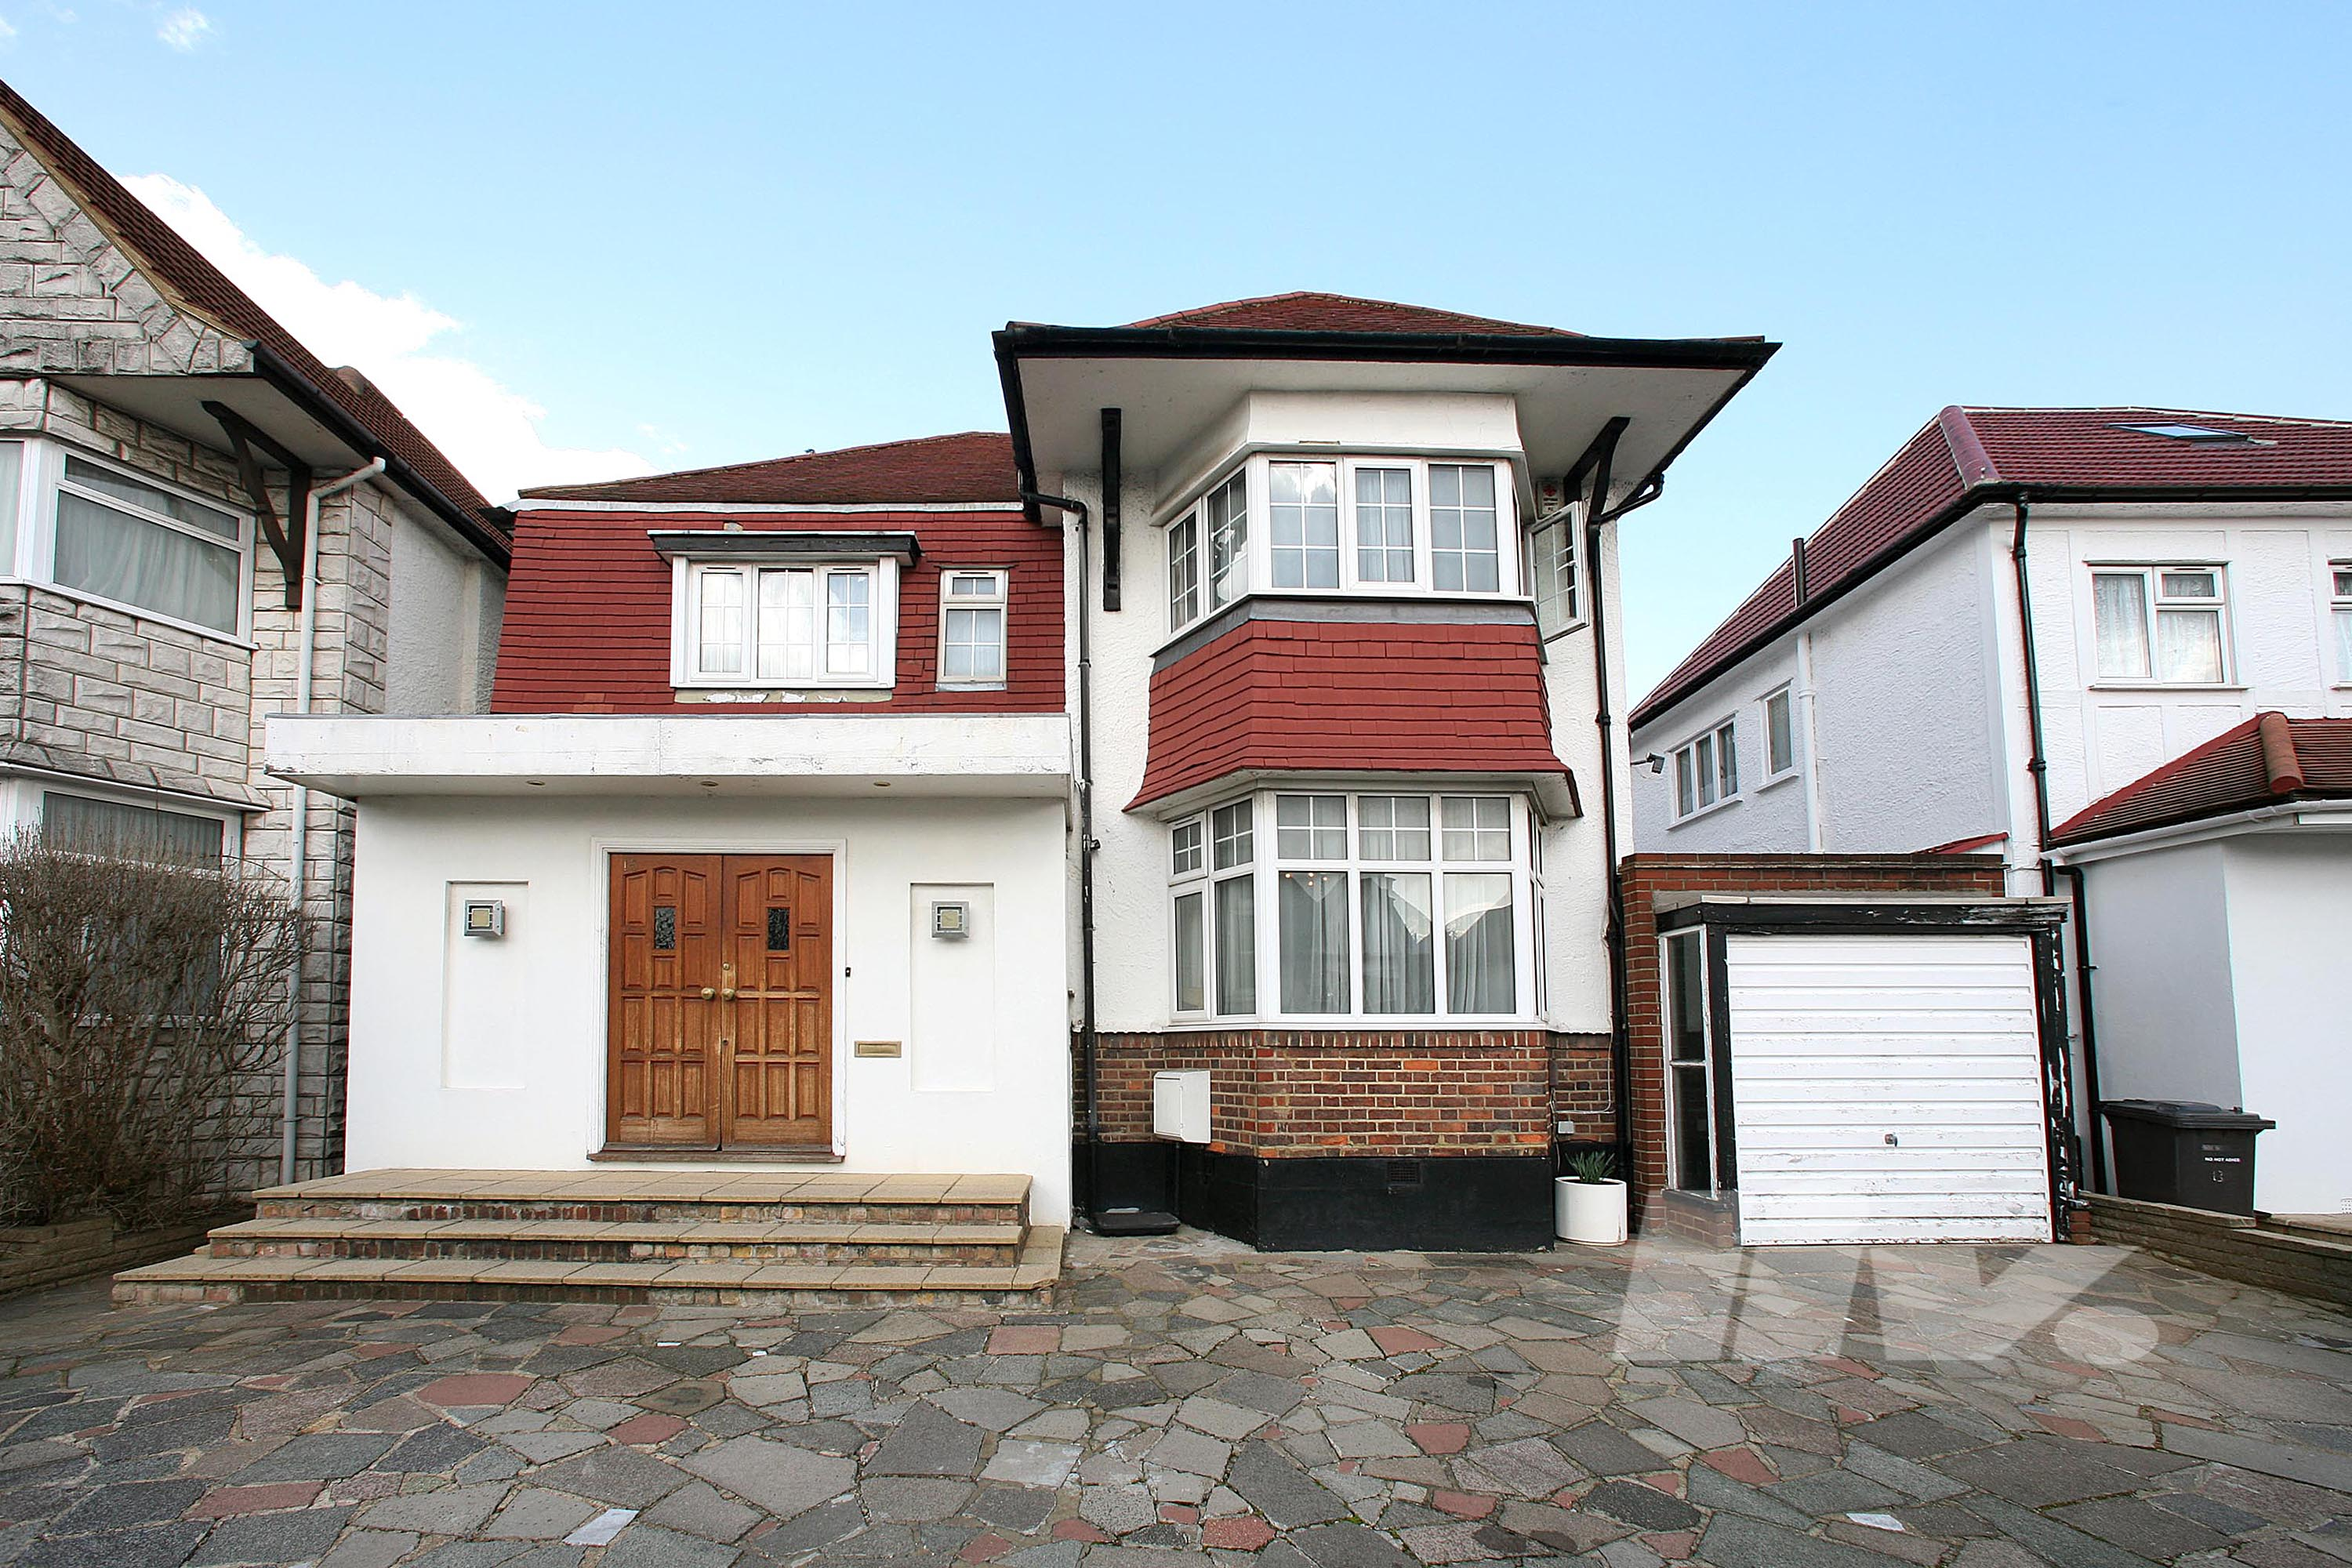 Alderton Crescent  Hendon  NW4